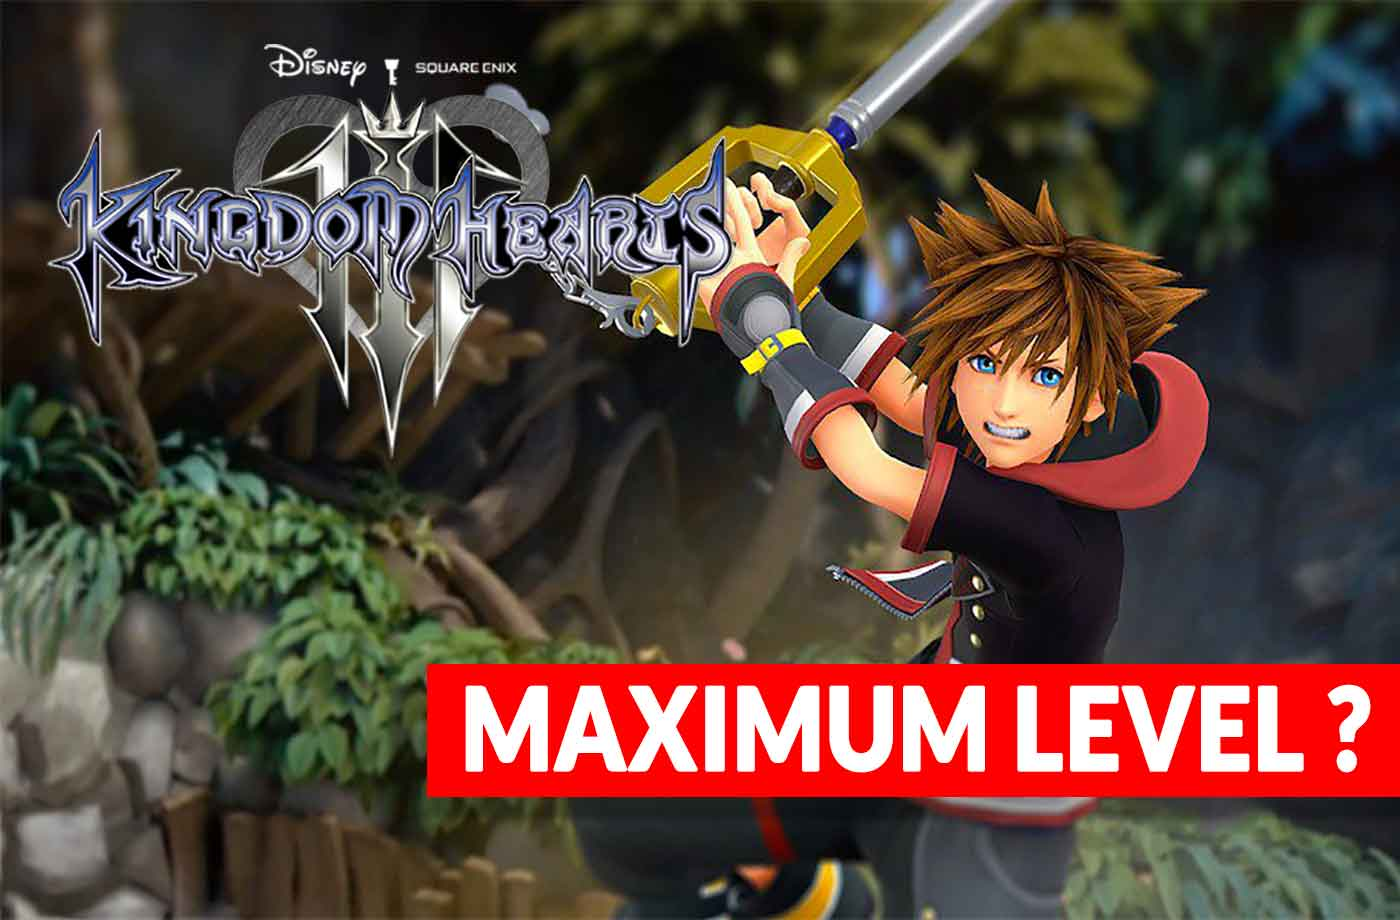 Wiki Kingdom Hearts 3 what is the maximum level of the characters